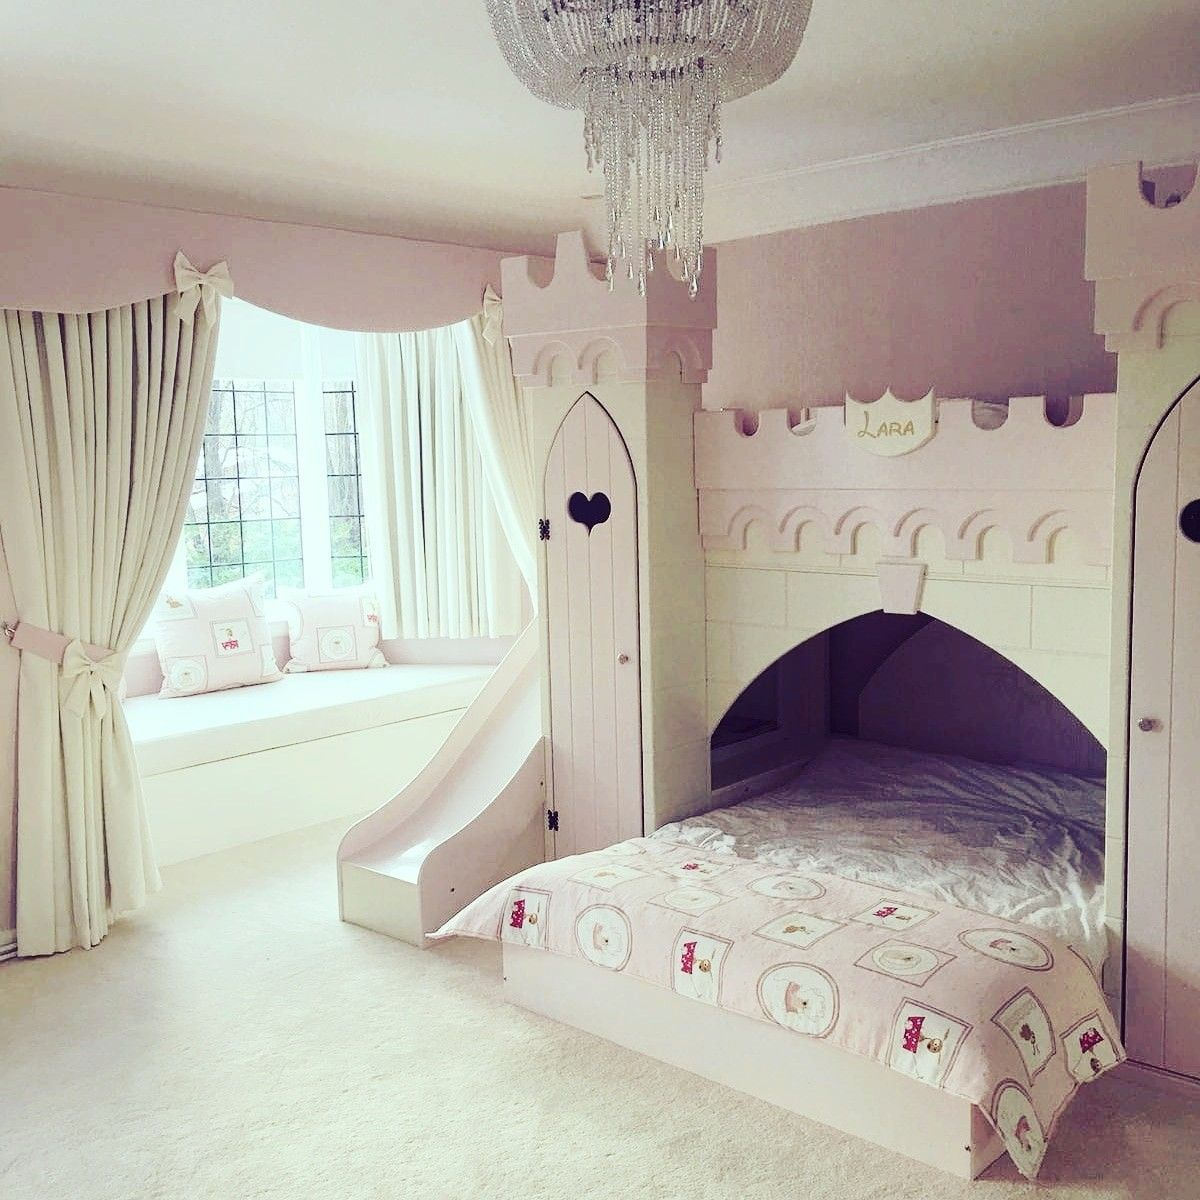 Luxury Princess Bedroom Go To Circu Net And Find The Most Amazing Princess Themed Furniture For Kids Bedroom Girls Bedroom Sets Girl Room Fairytale Bedroom